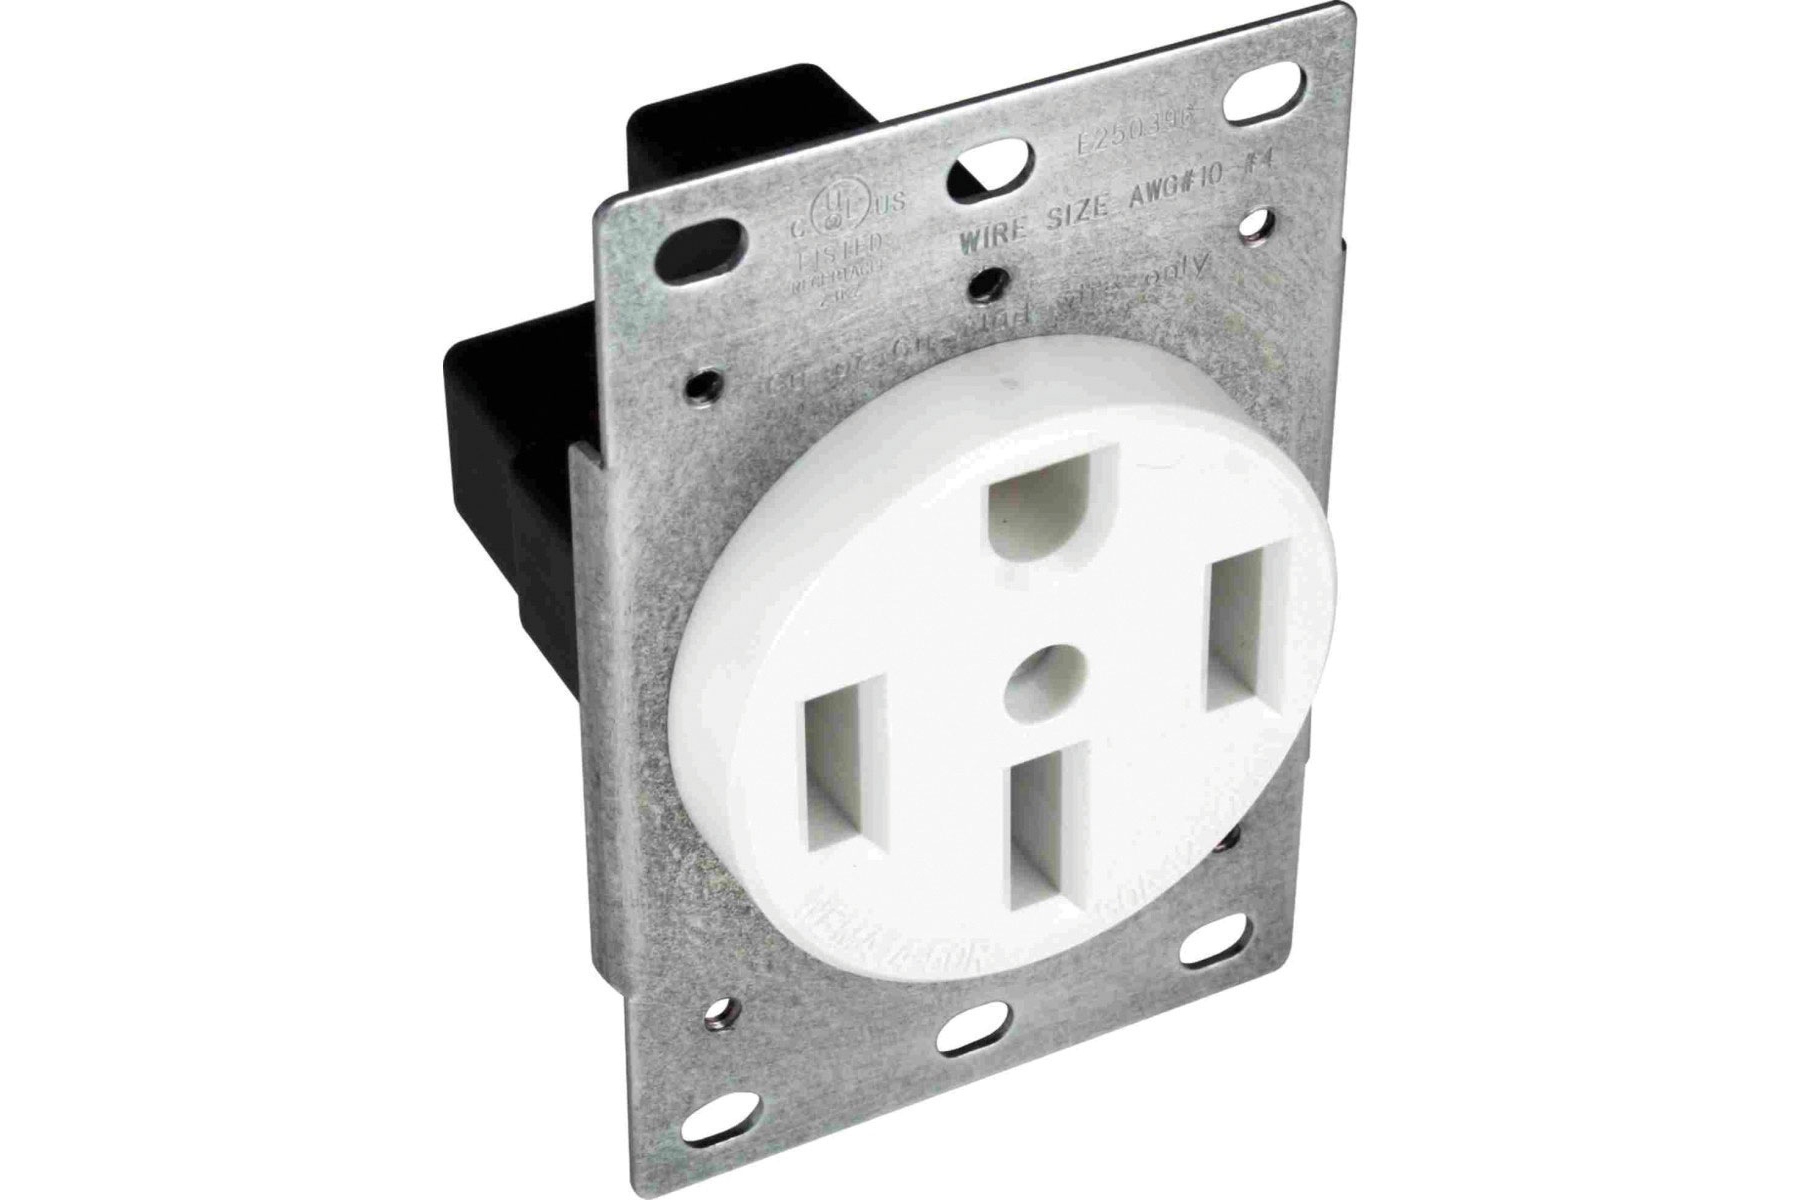 How To Install A 220 Volt 4 Wire Outlet Askmediy Tagshow Askmediyhow